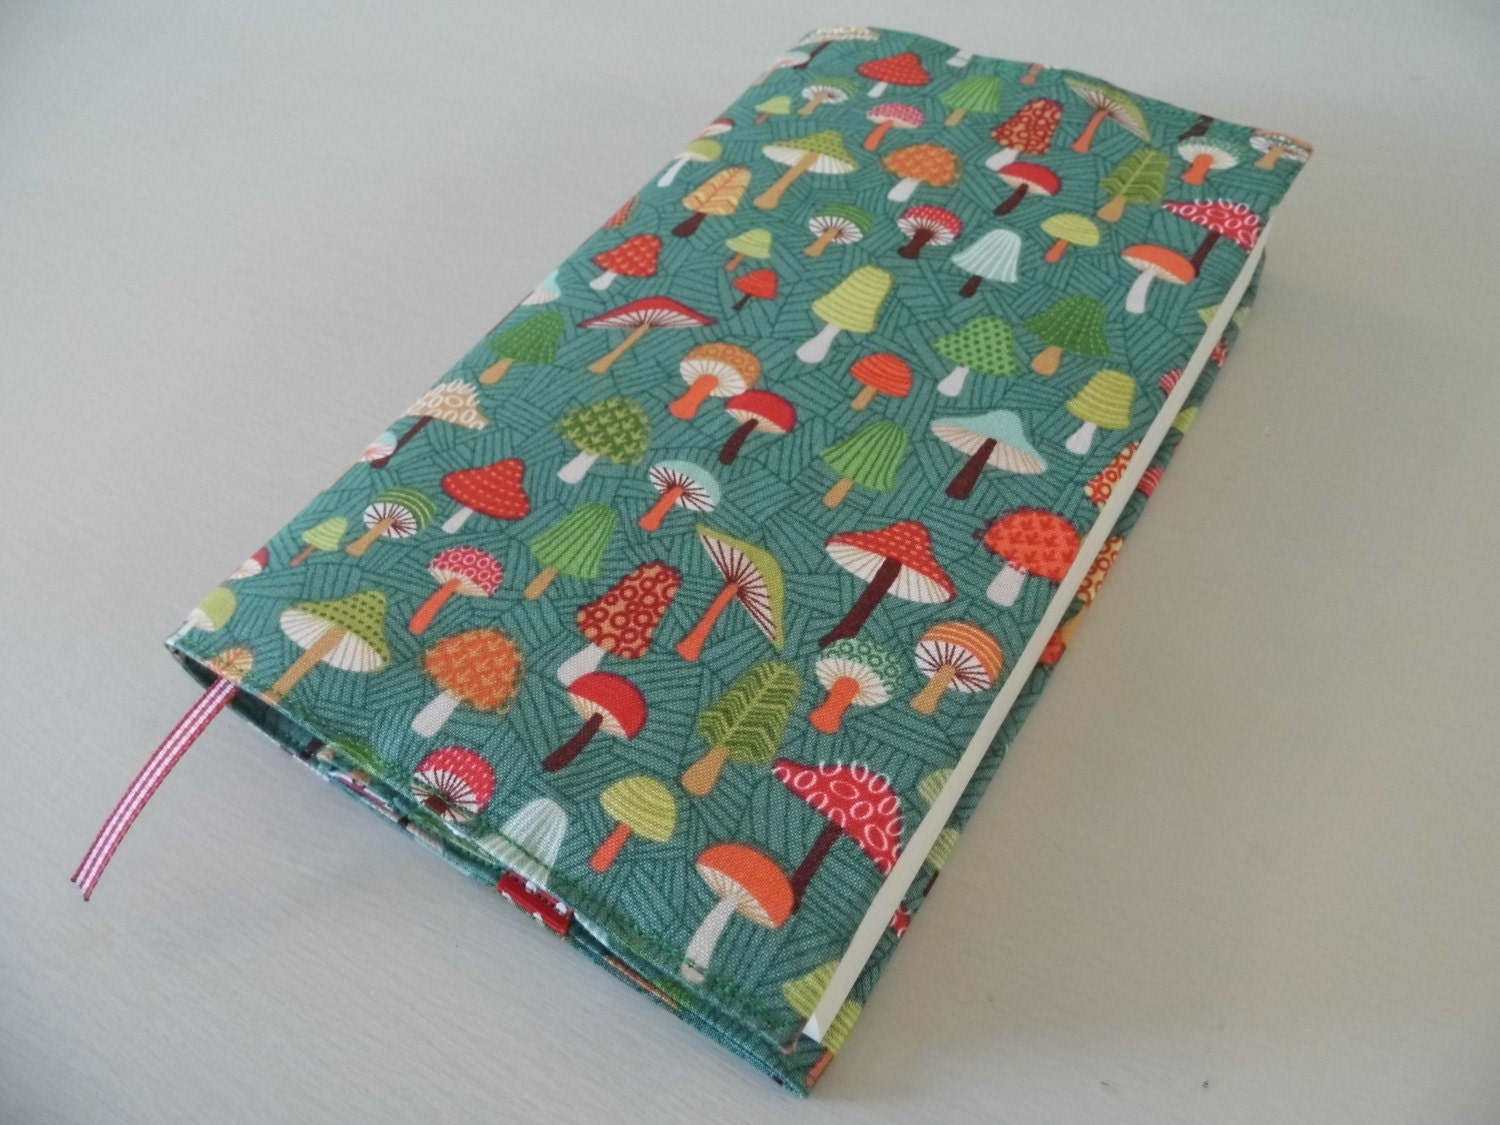 Handmade Fabric Book Covers : Mushyrooms handmade fabric book cover